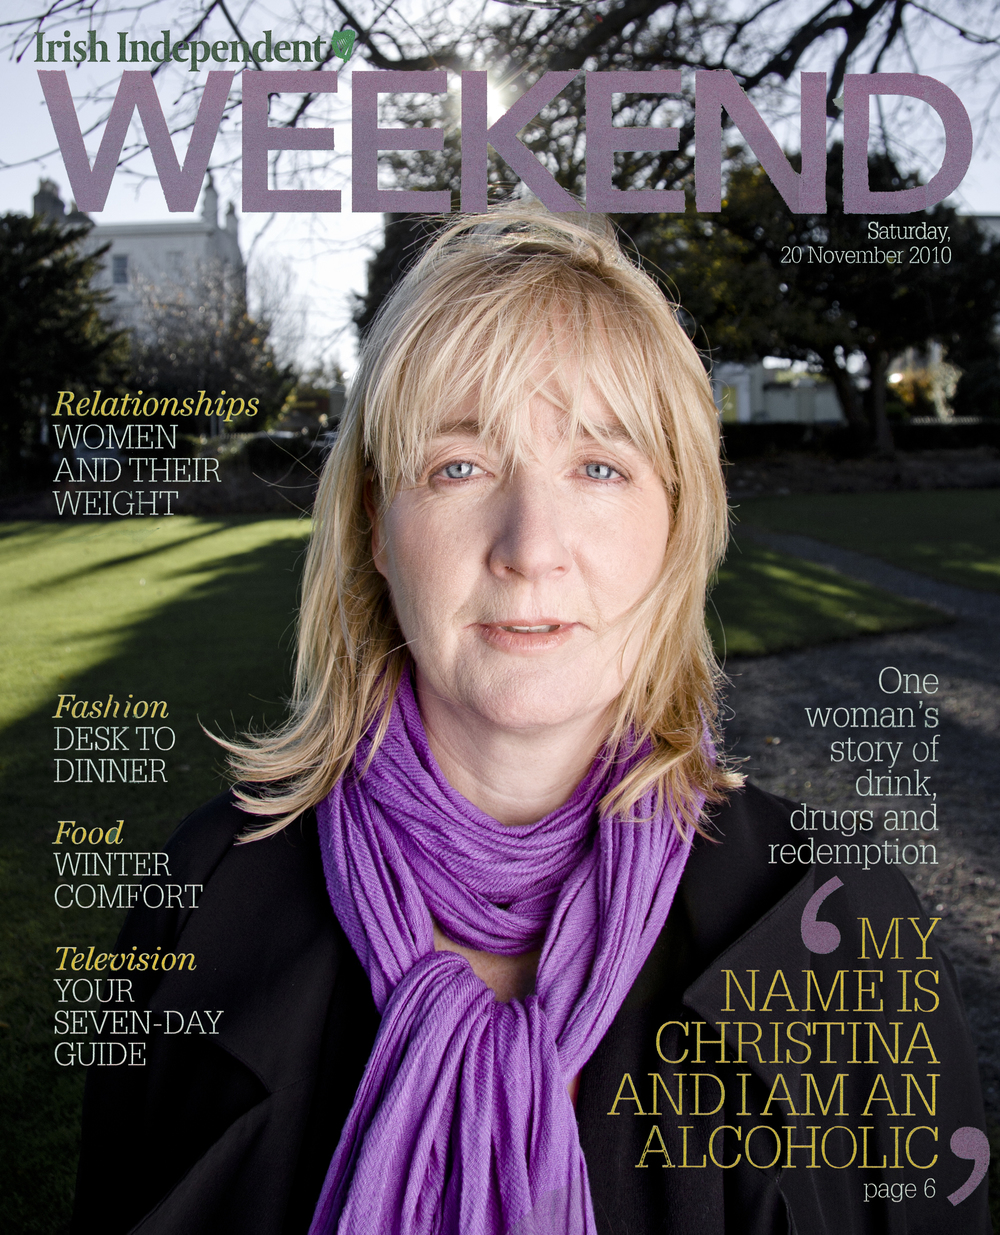 The Irish Independent   Weekend Magazine.